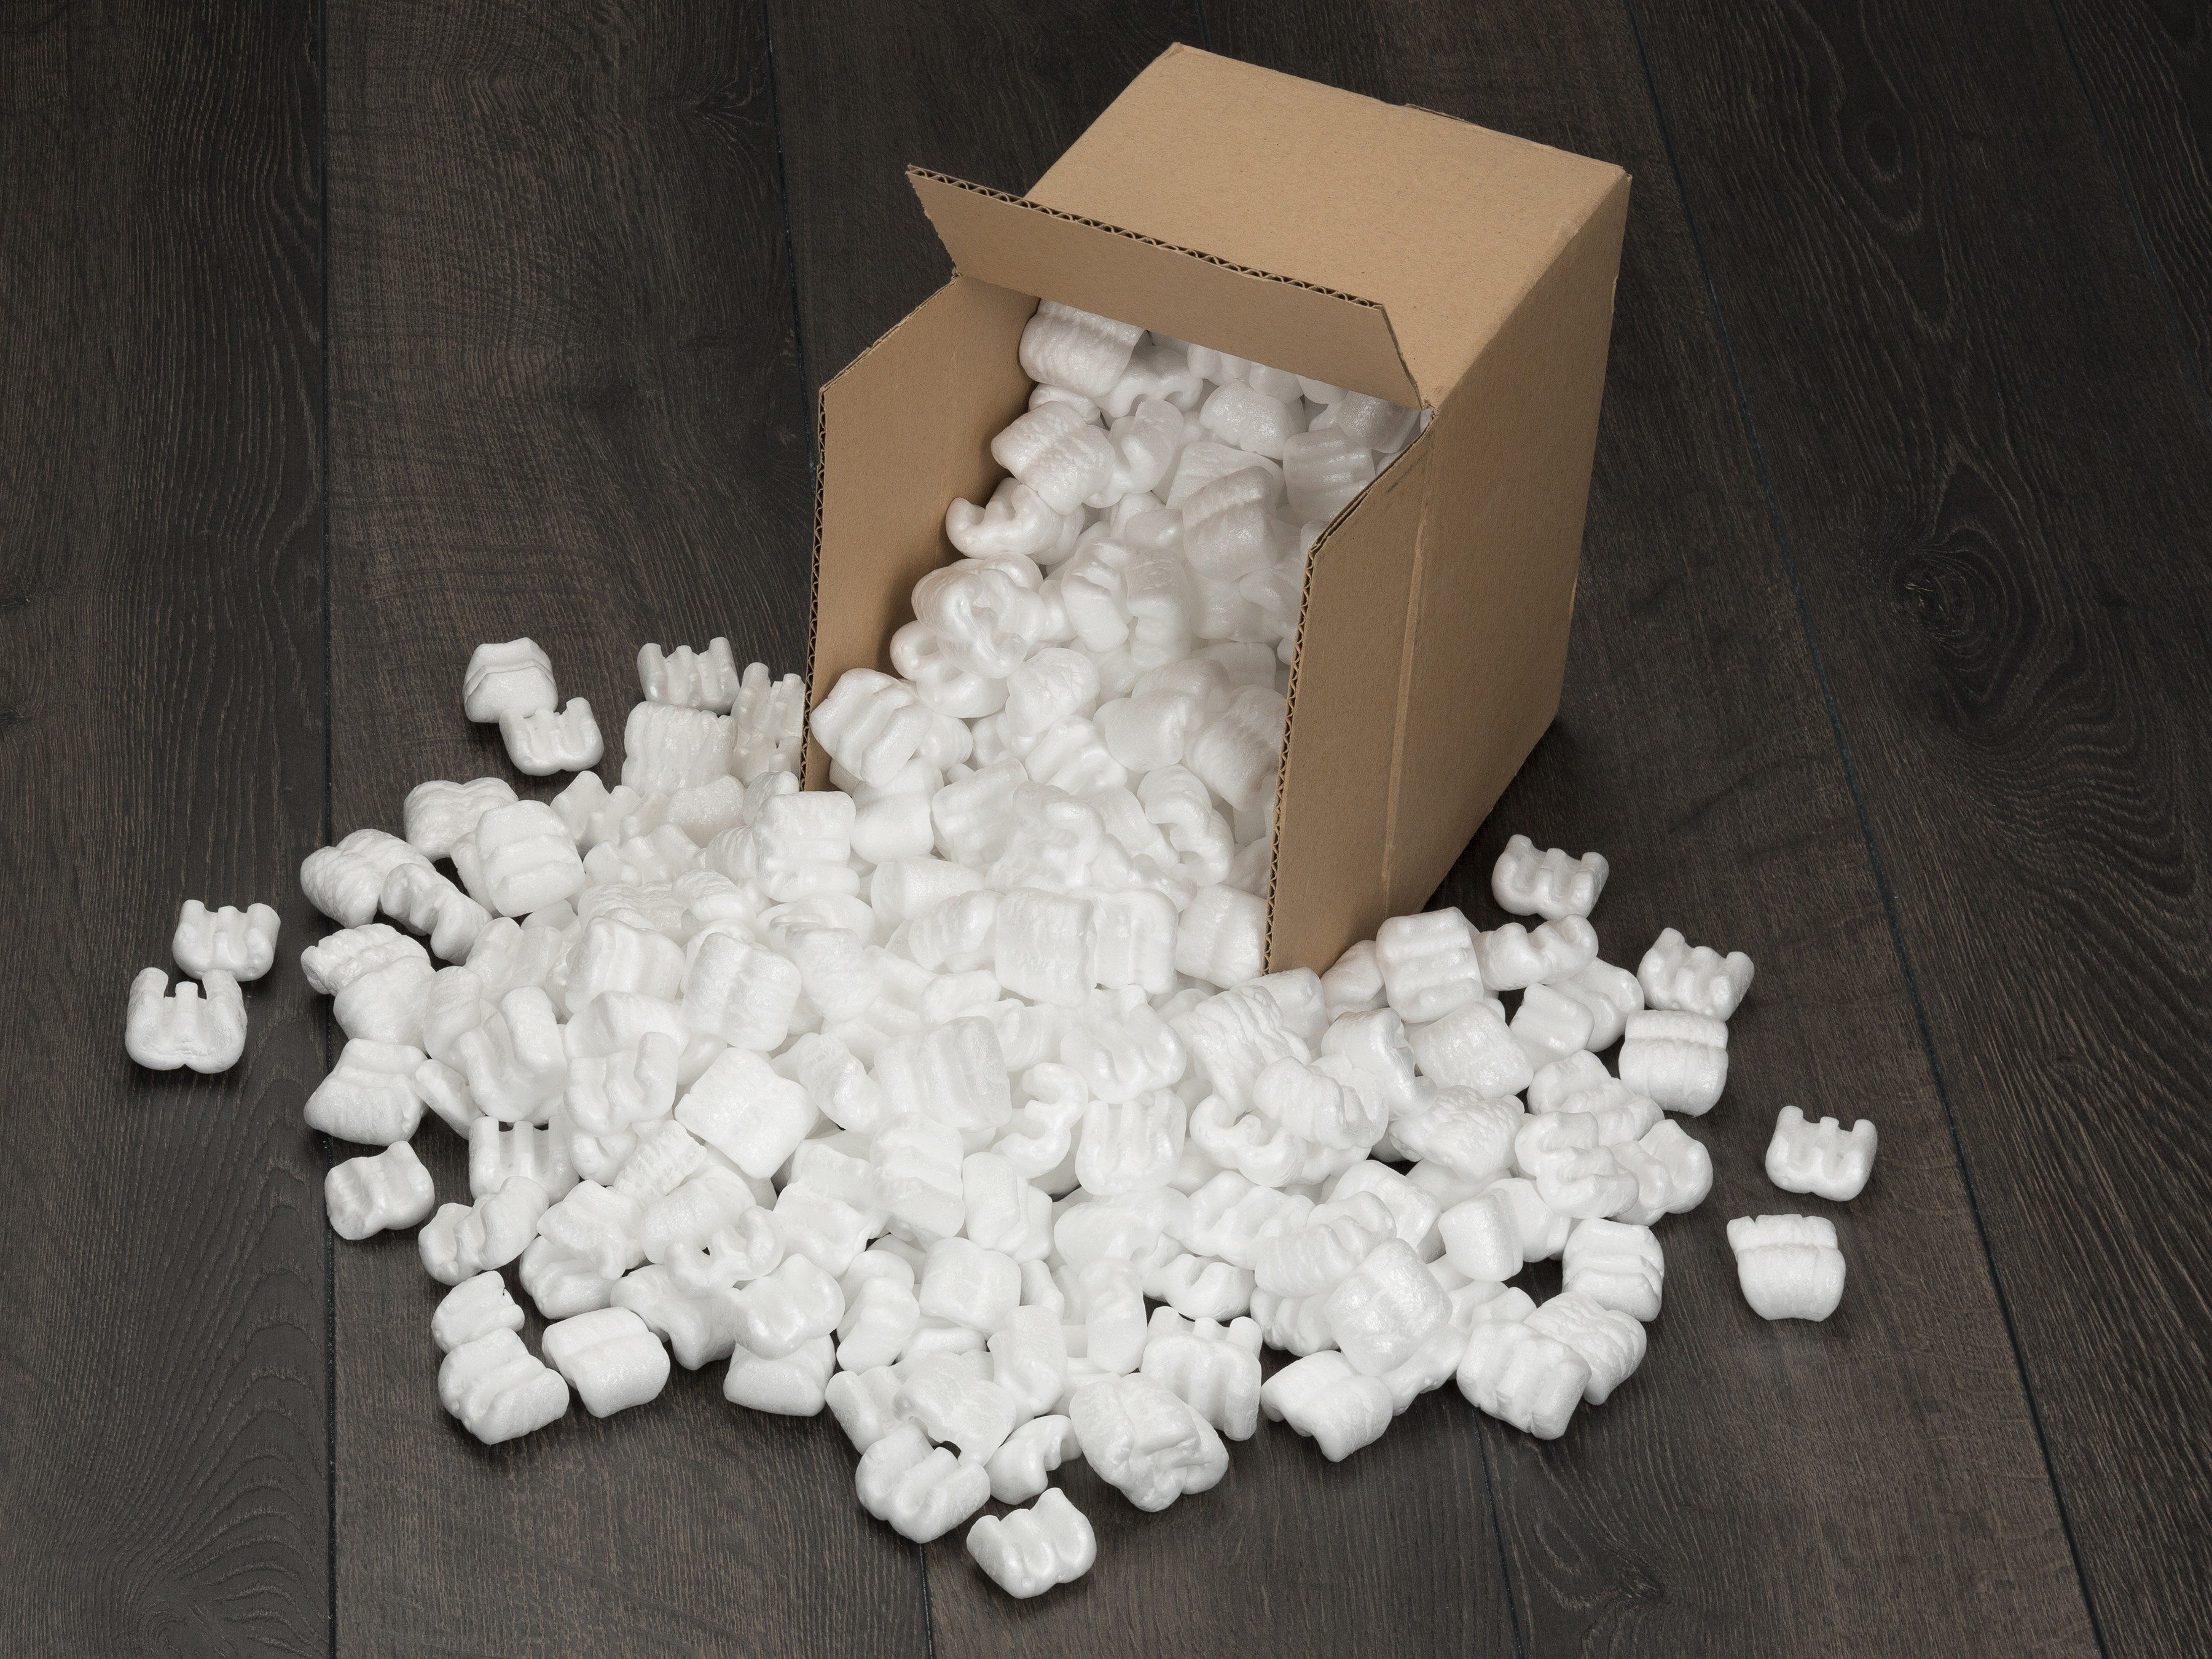 4. Use Styrofoam to Make Your Own Shipping Pellets